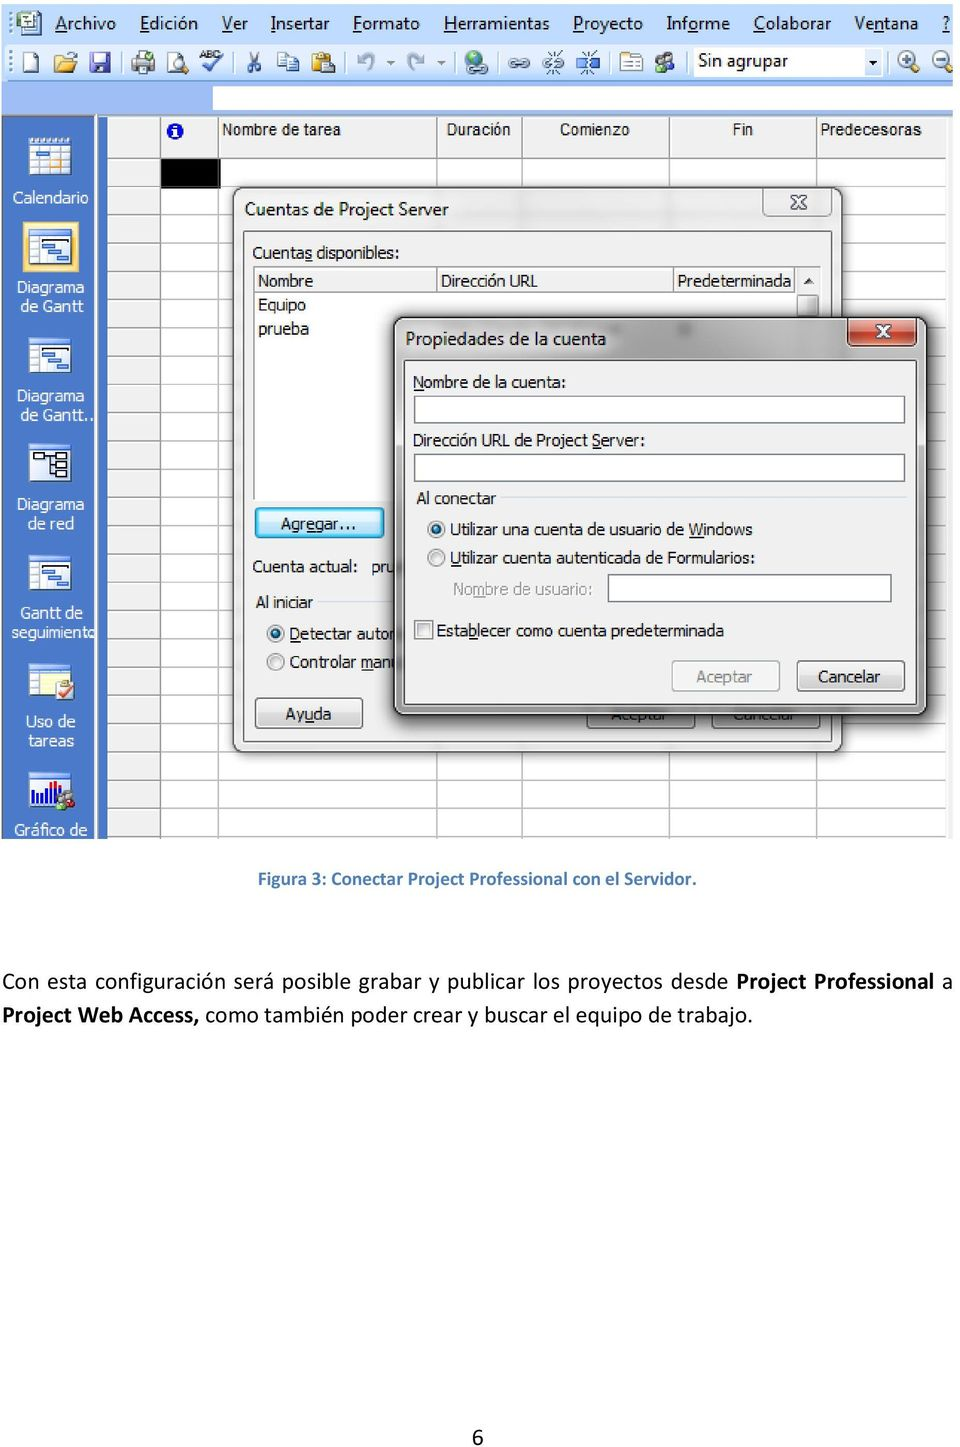 proyectos desde Project Professional a Project Web